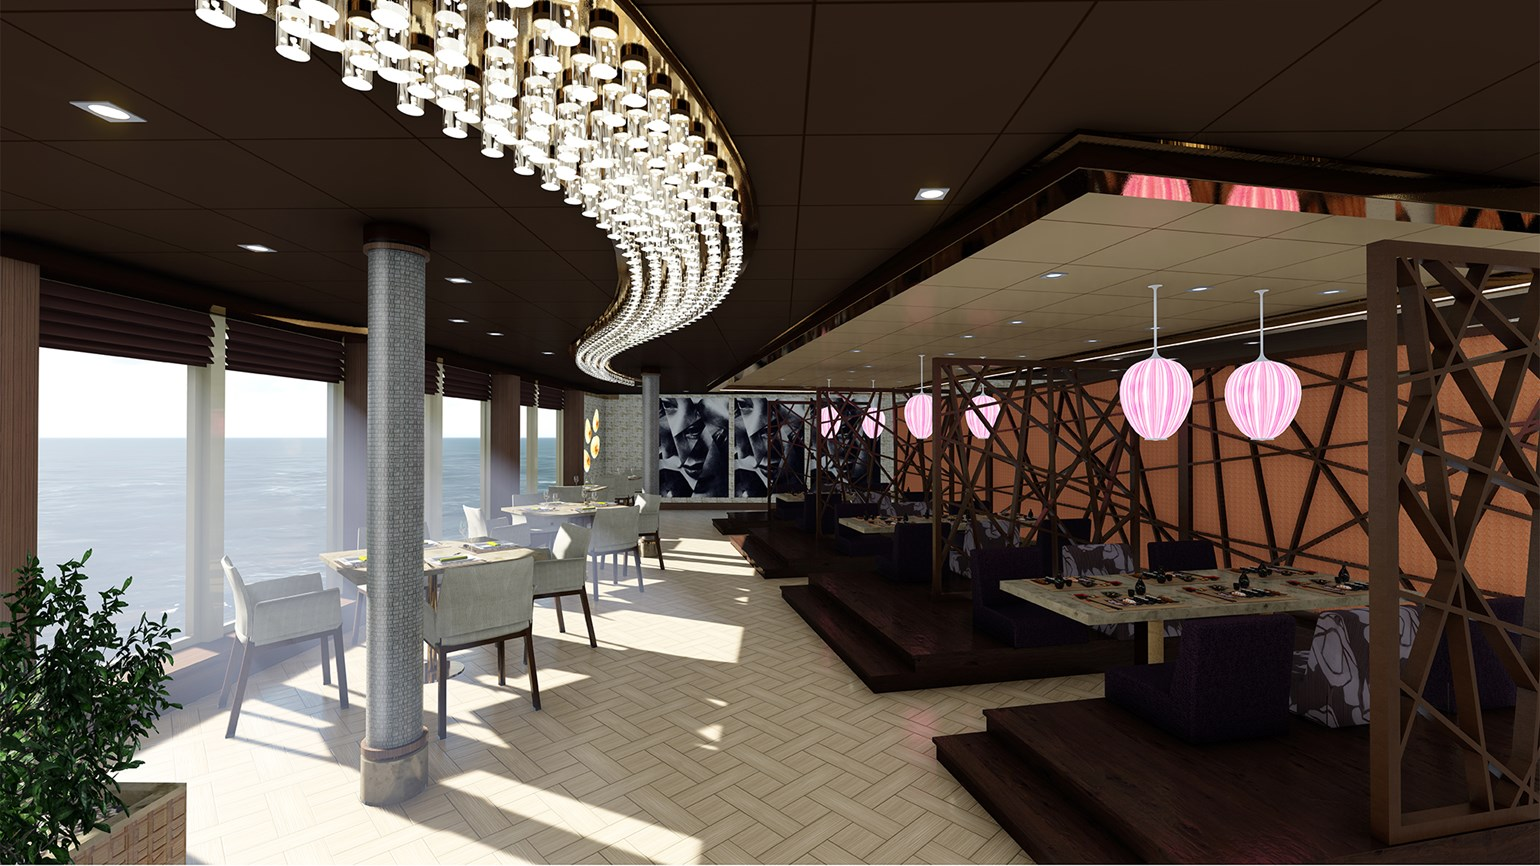 MSC introducing flexible dining on the Meraviglia